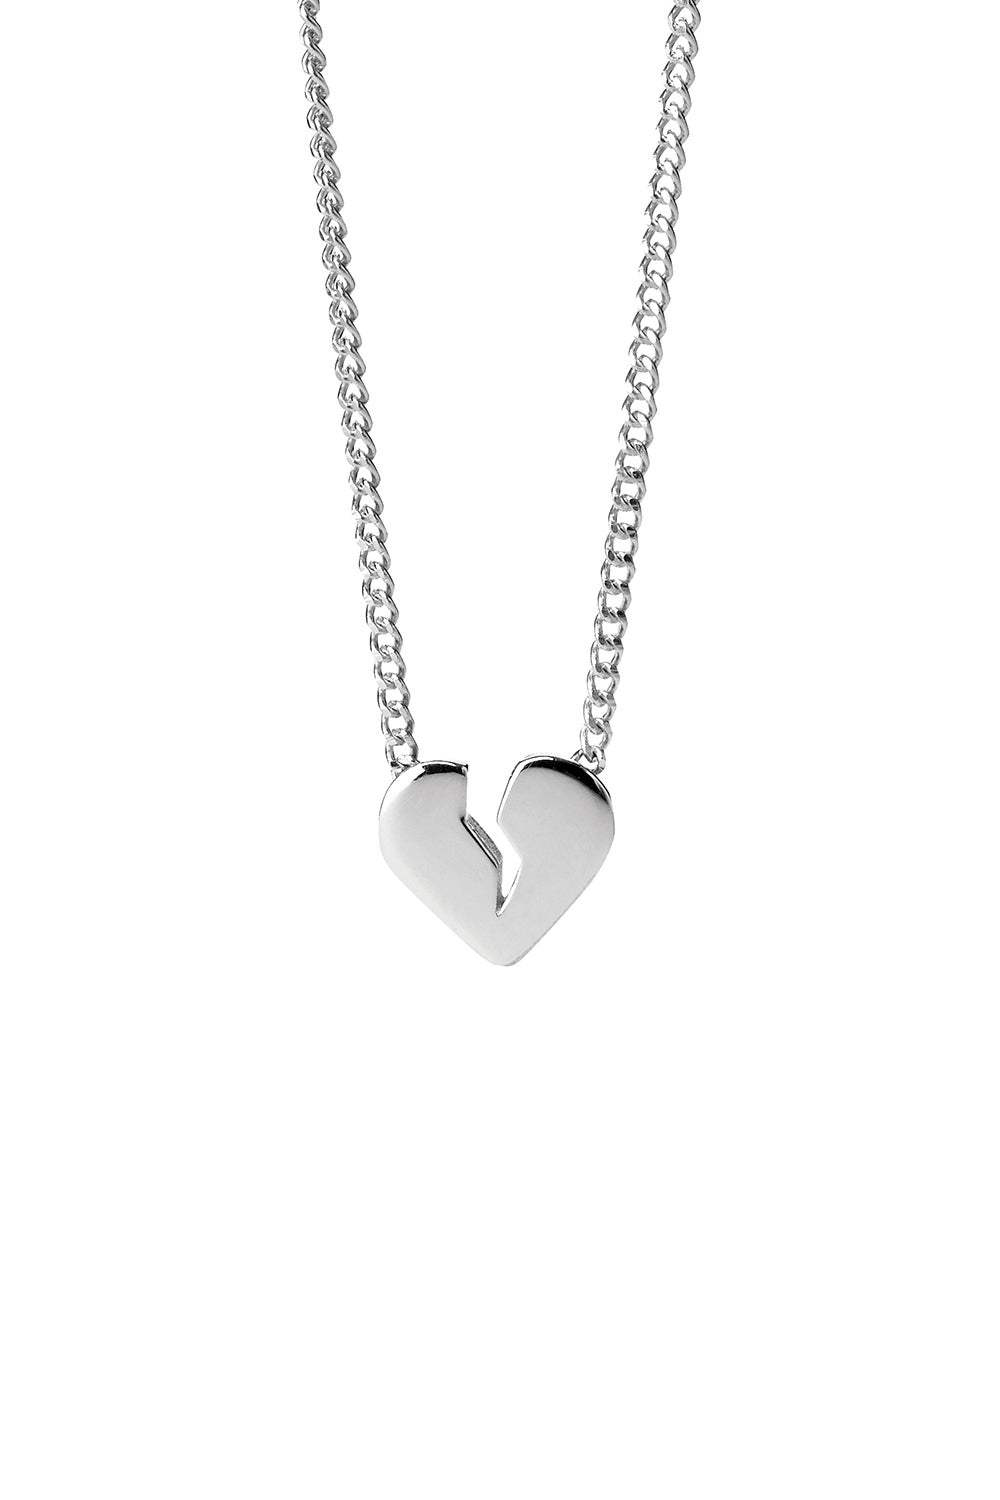 Broken Heart Necklace Silver